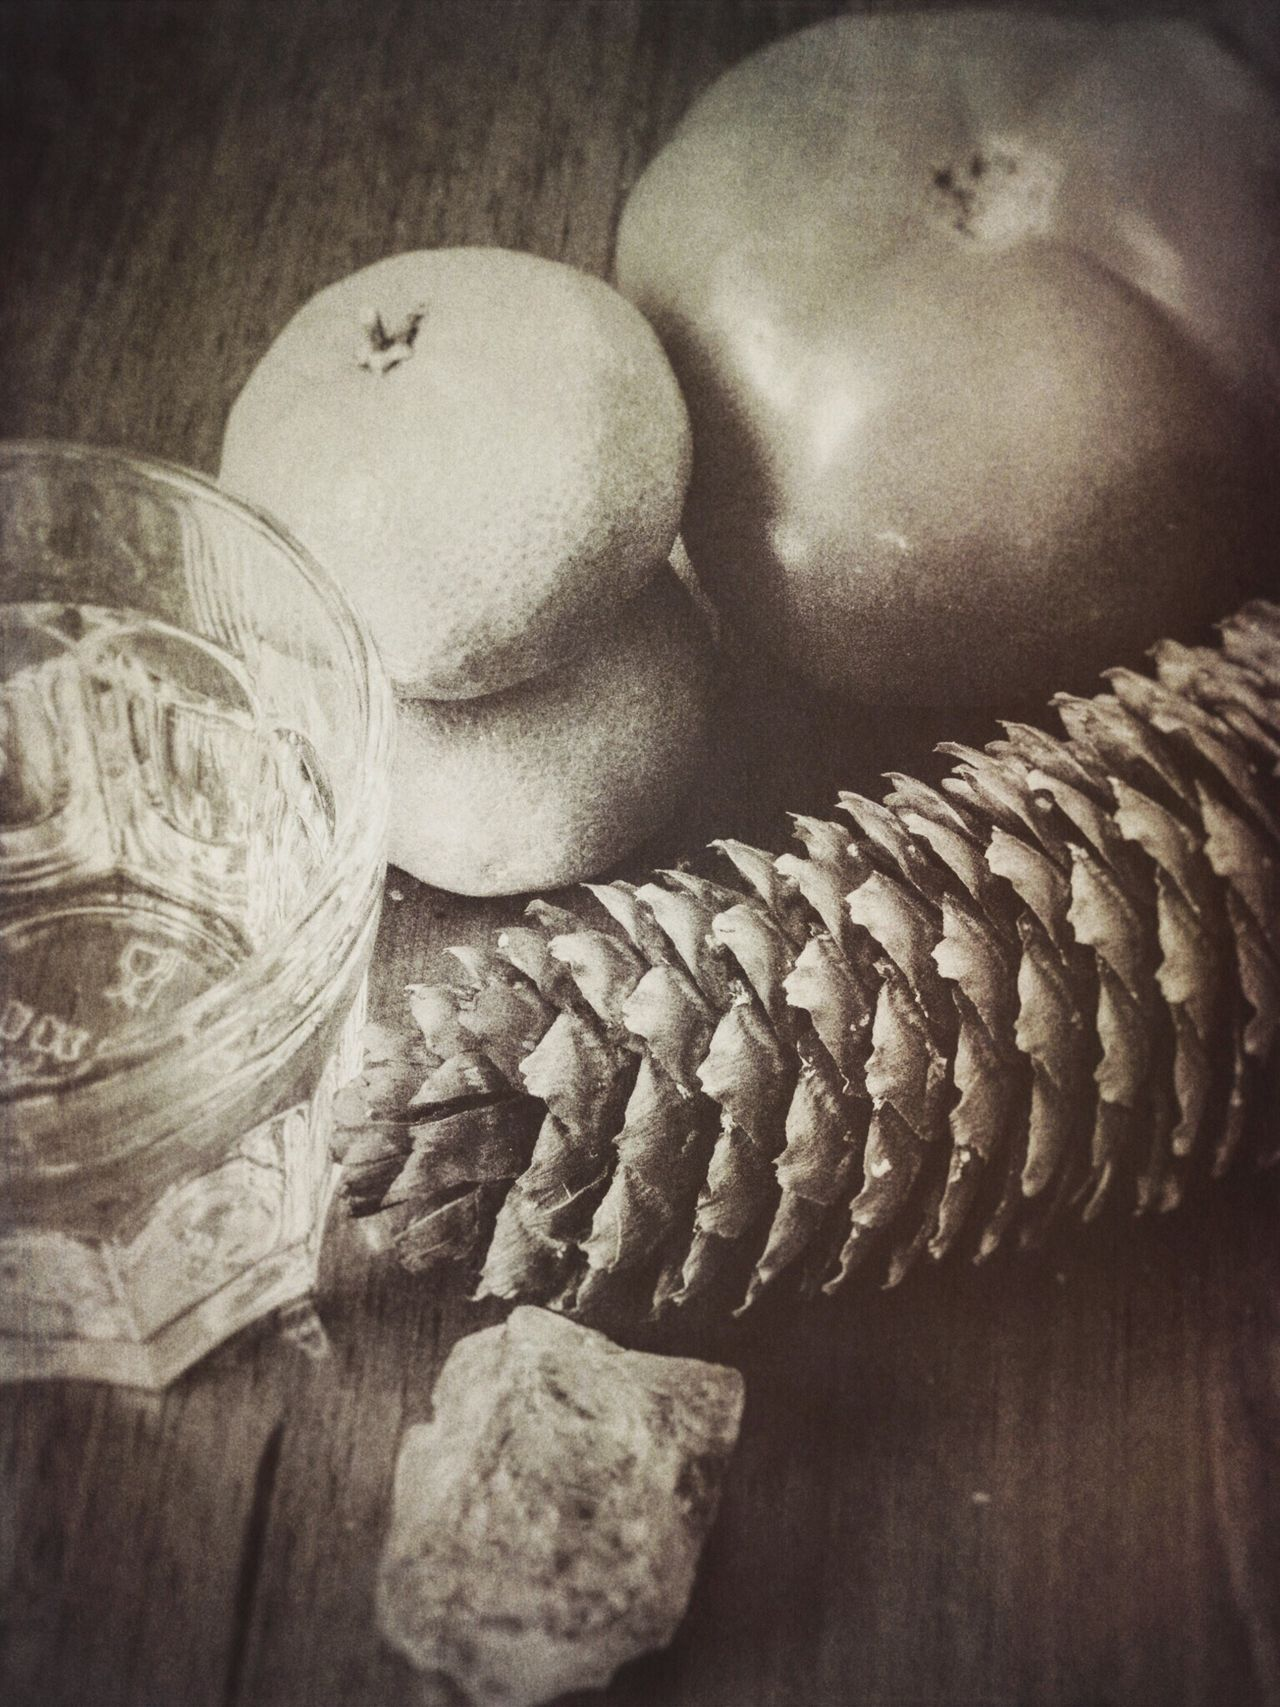 Bodegón II Table Food And Drink Wood - Material High Angle View Indoors  Close-up No People Day Still Life Tabletop Bodegón Blackandwhite Antique Random Objects Textured  Minimal